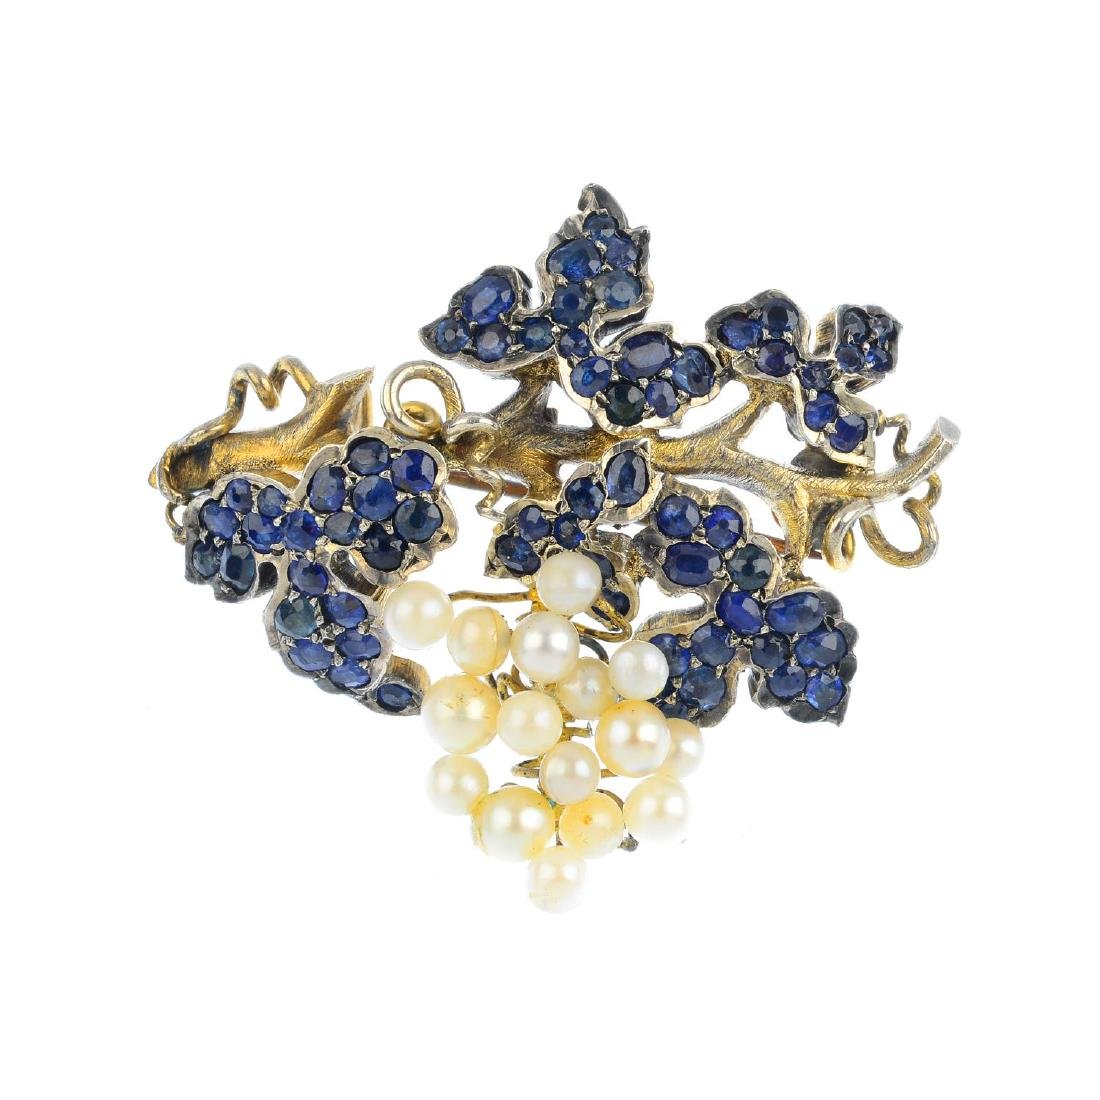 A sapphire and seed pearl brooch. Designed as a bunch